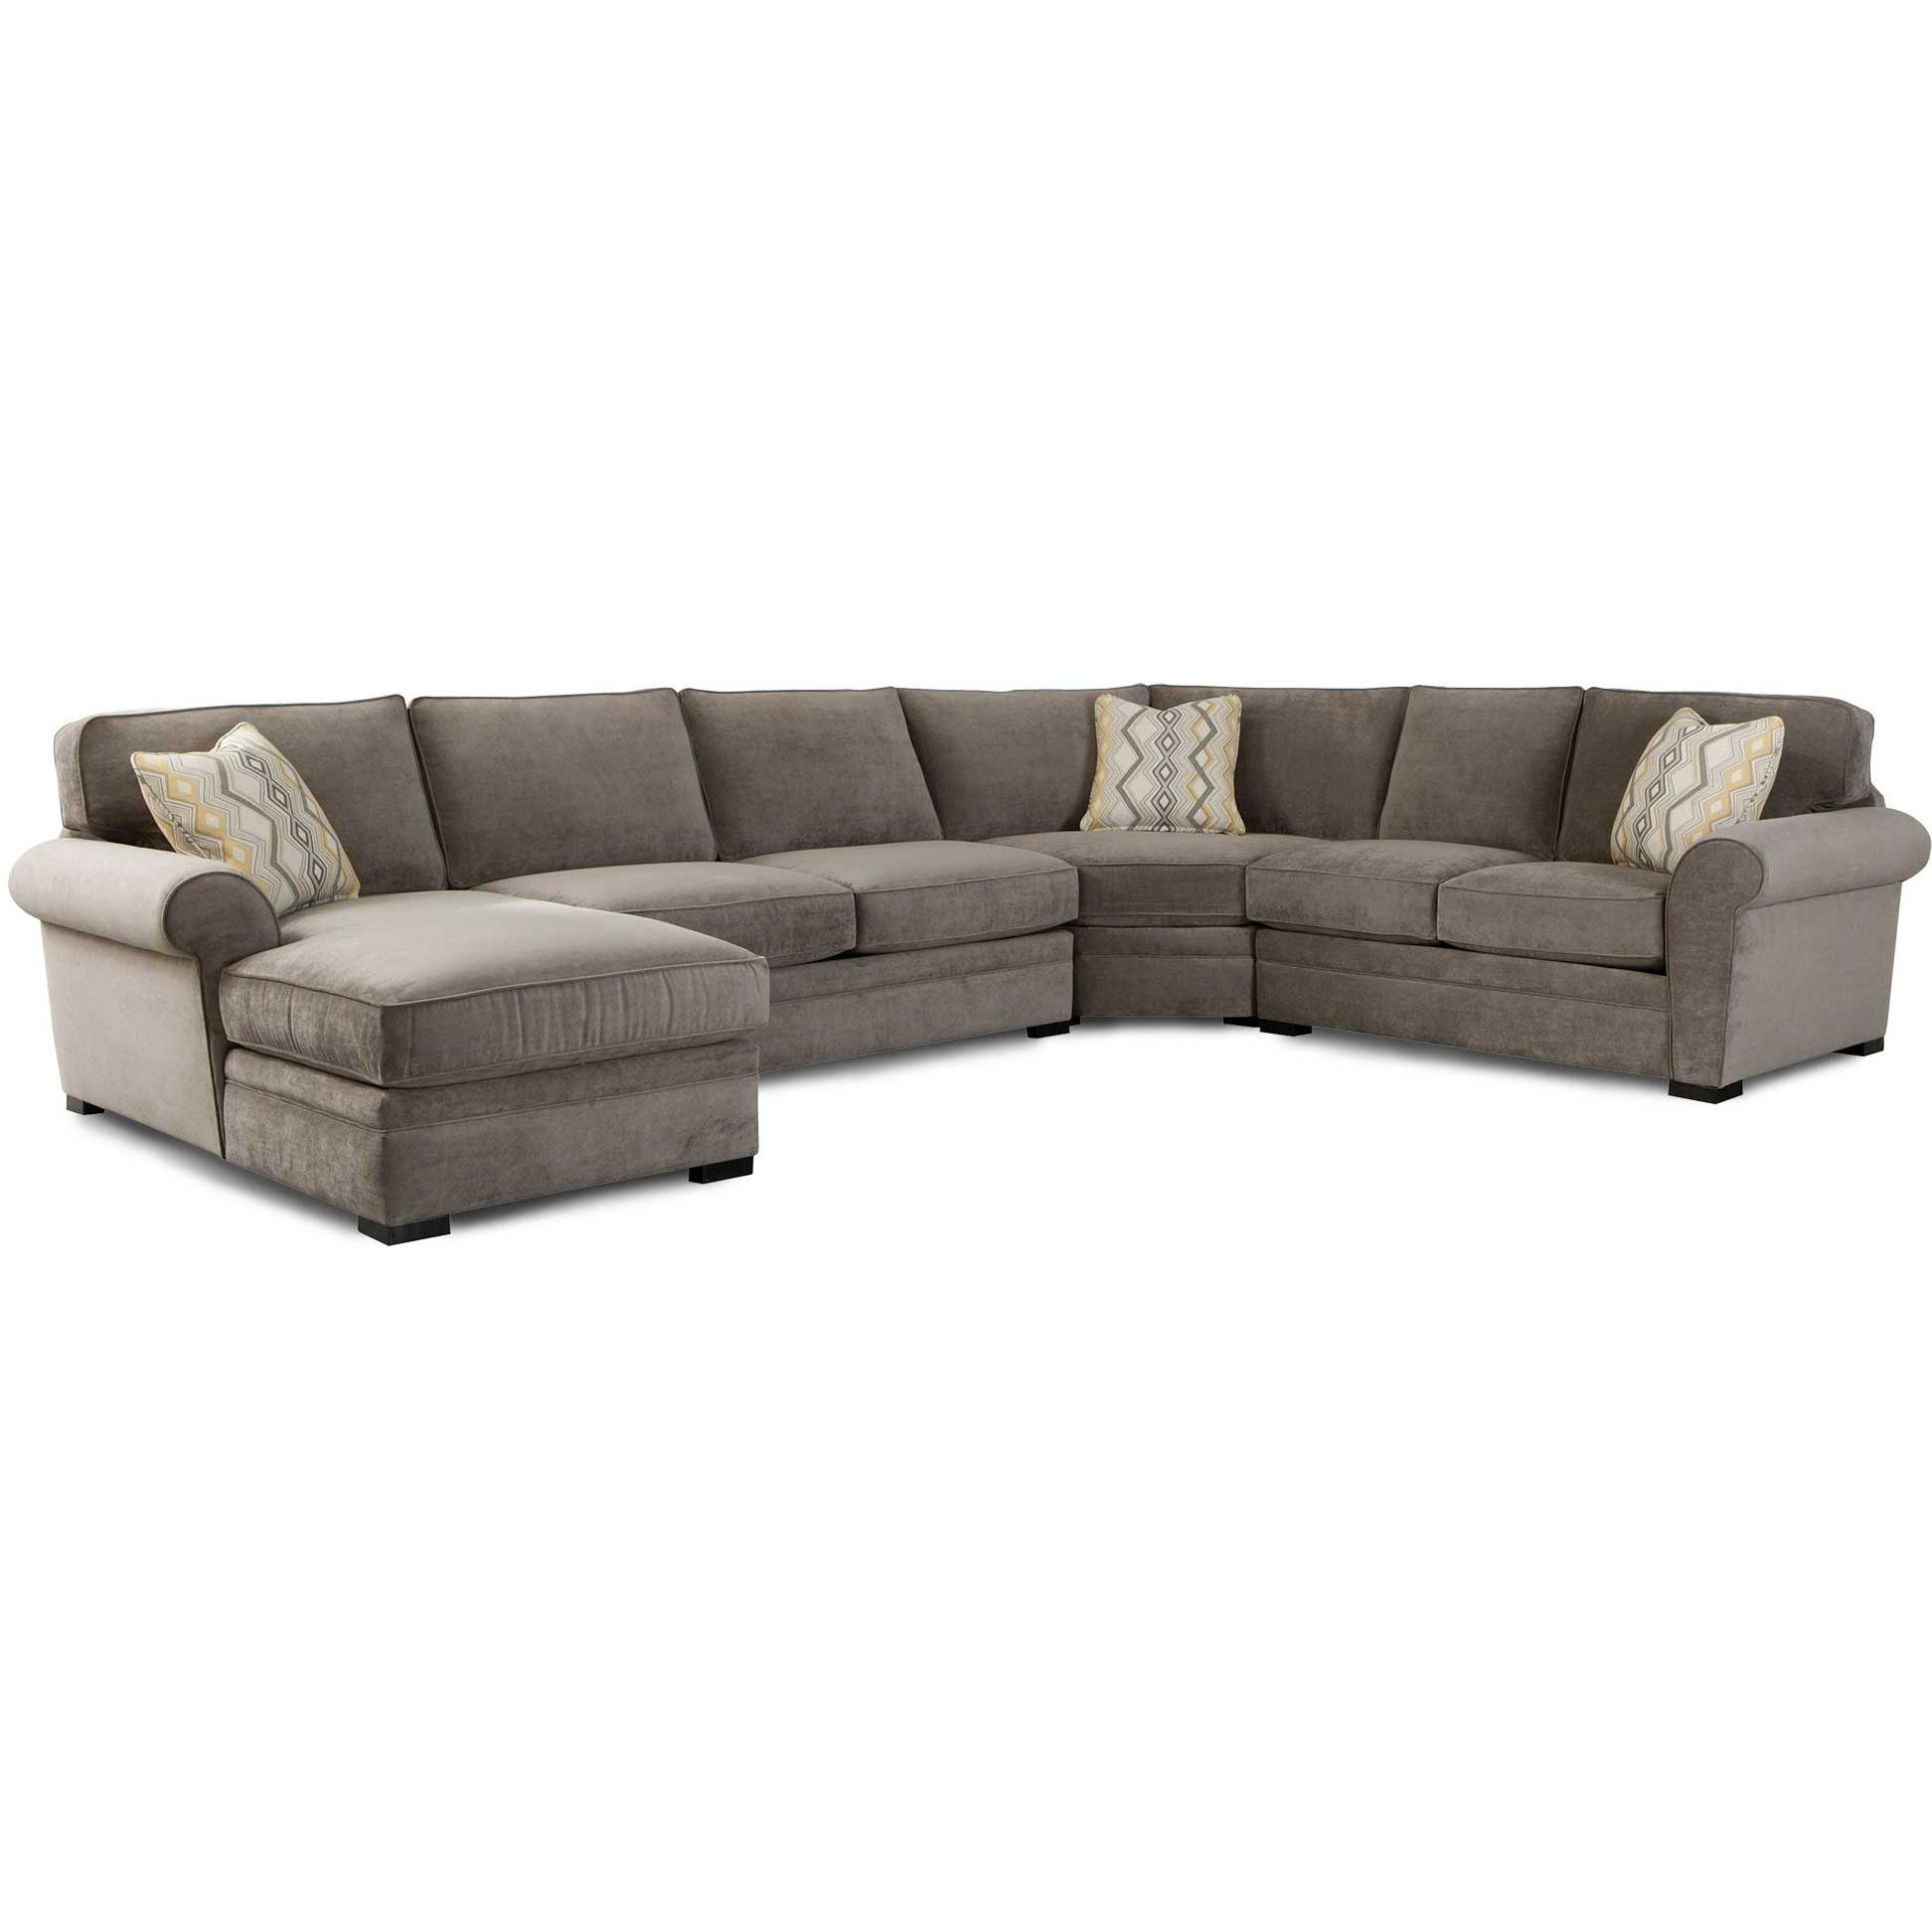 Shop sectional sofas and leather sectionals